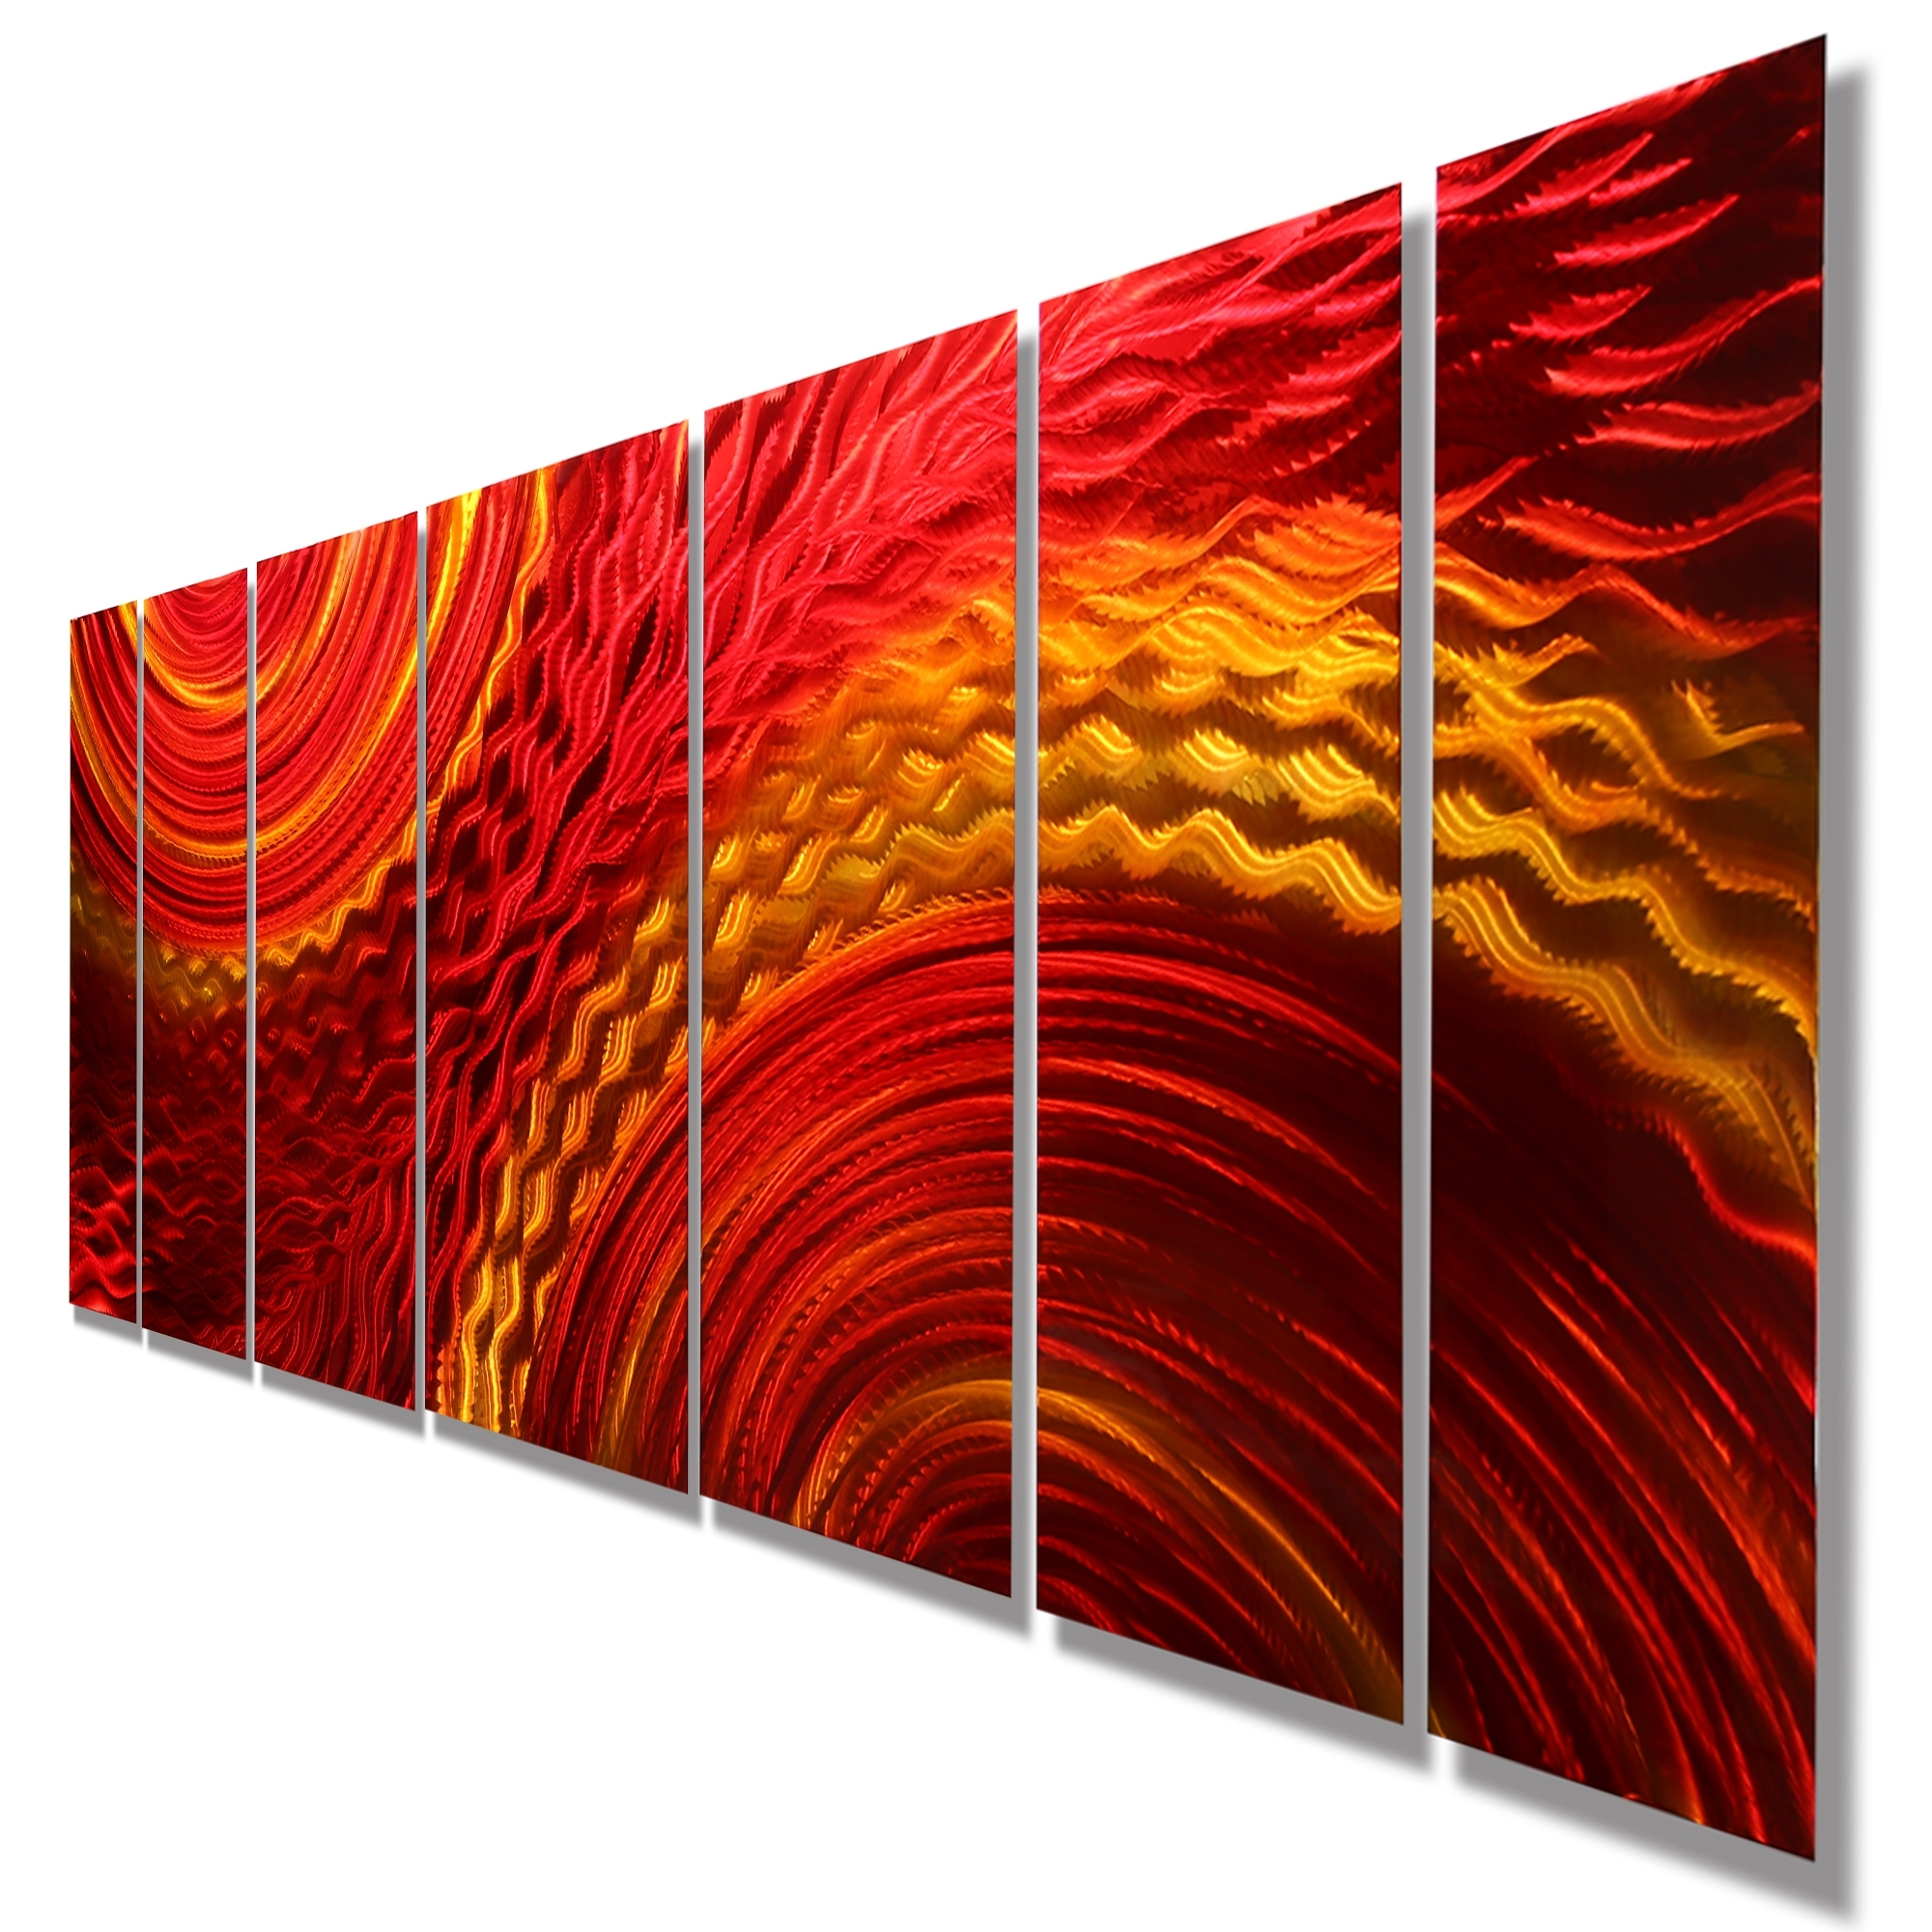 Home Decor: Alluring Abstract Metal Wall Art With Harvest Moods Xl Within 2017 Australian Abstract Wall Art (View 6 of 20)